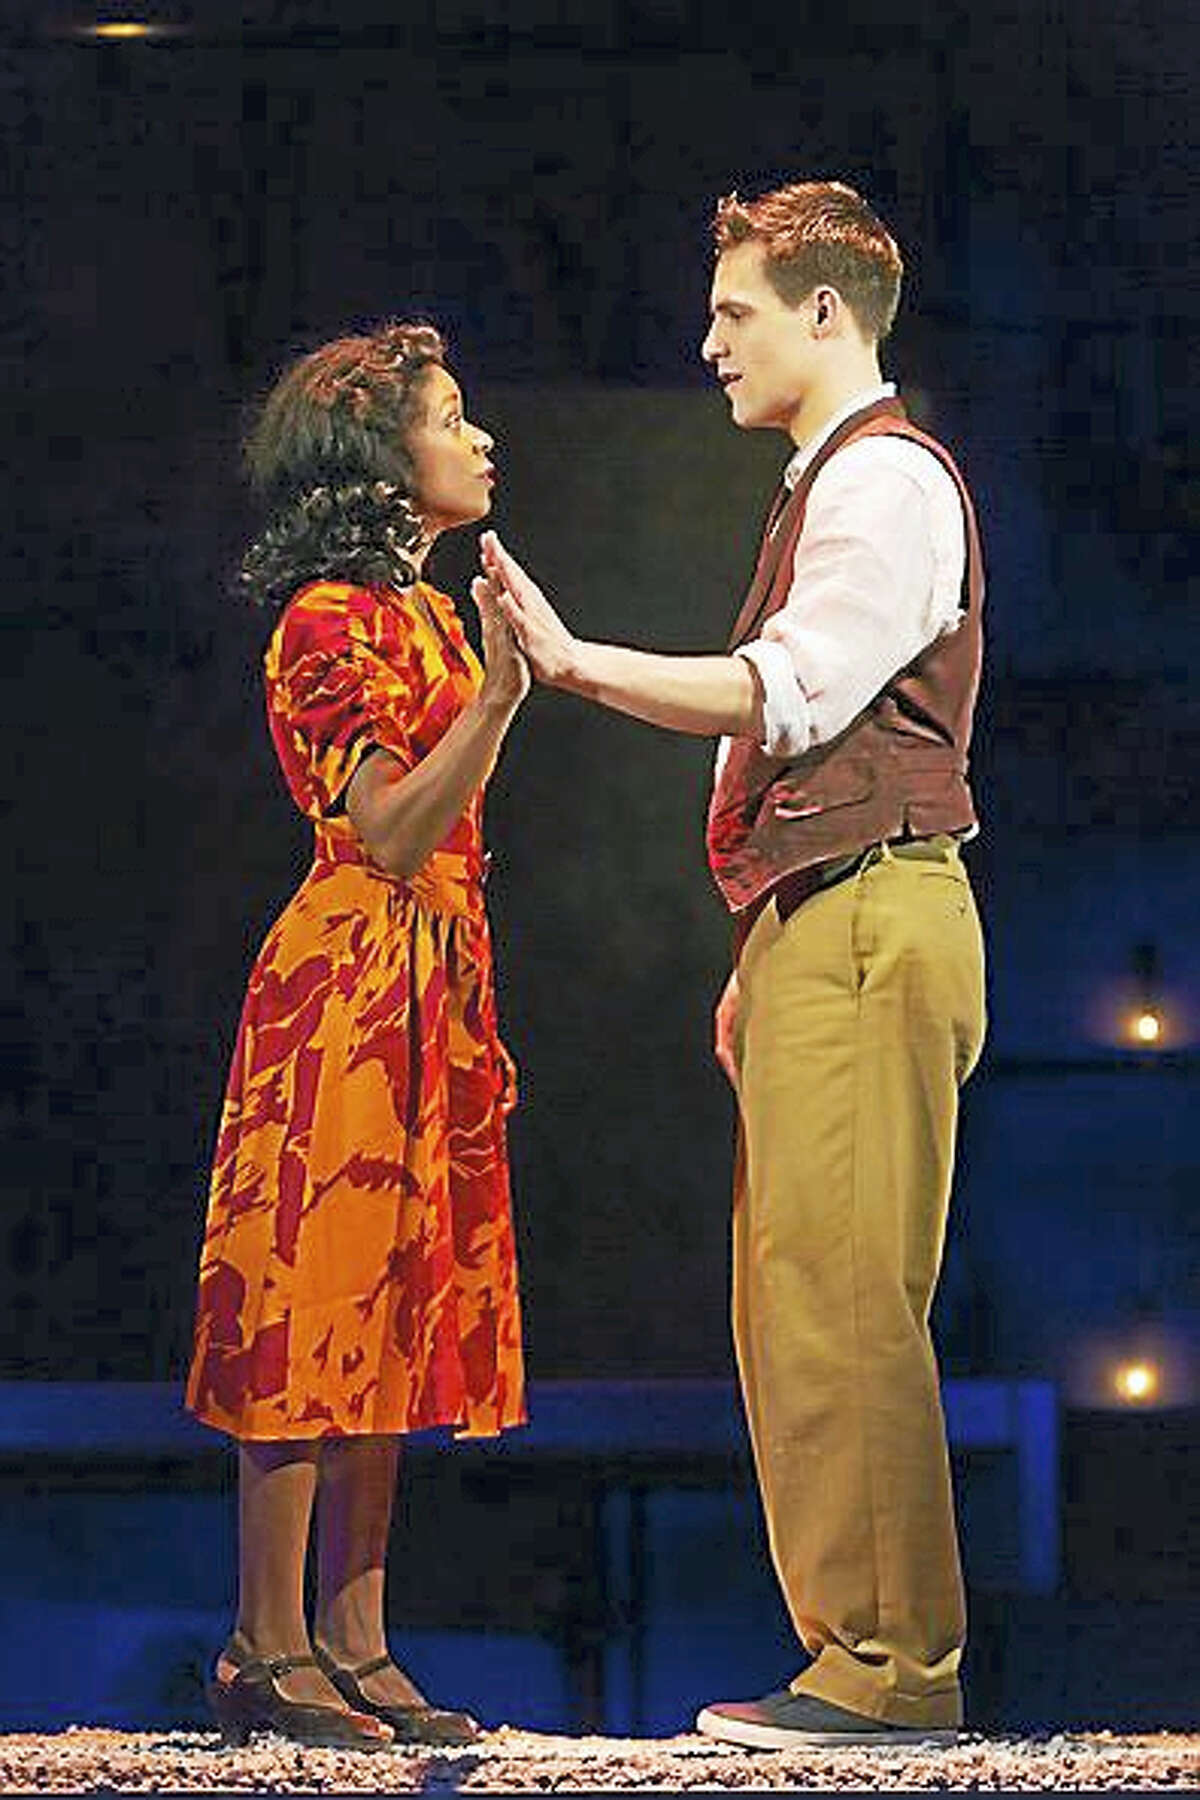 """Contributed photo courtesy of Hartford StageKaliswa Brewster and Chris Ghaffari star in Shakespeare's """"Romeo and Juliet."""""""